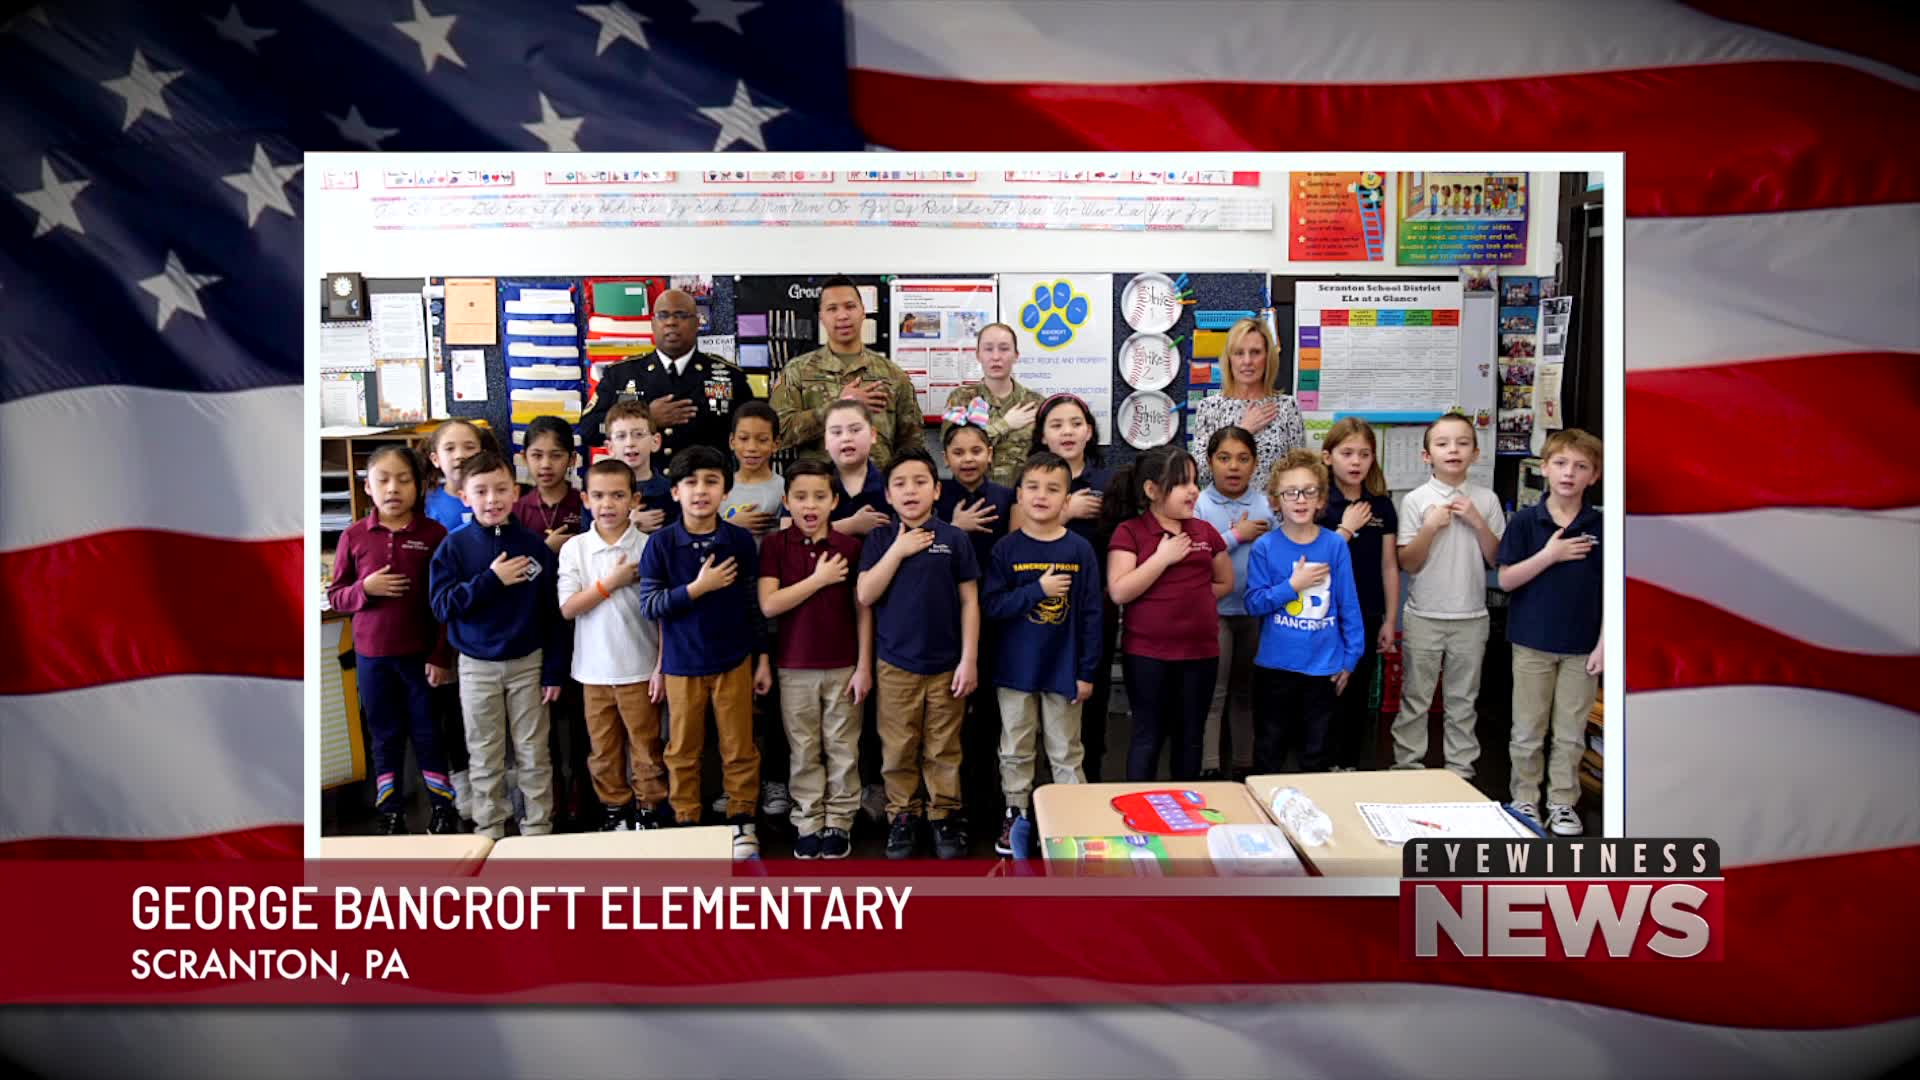 GEORGE BANCROFT ELEMENTARY SECOND GRADE PLEDGE